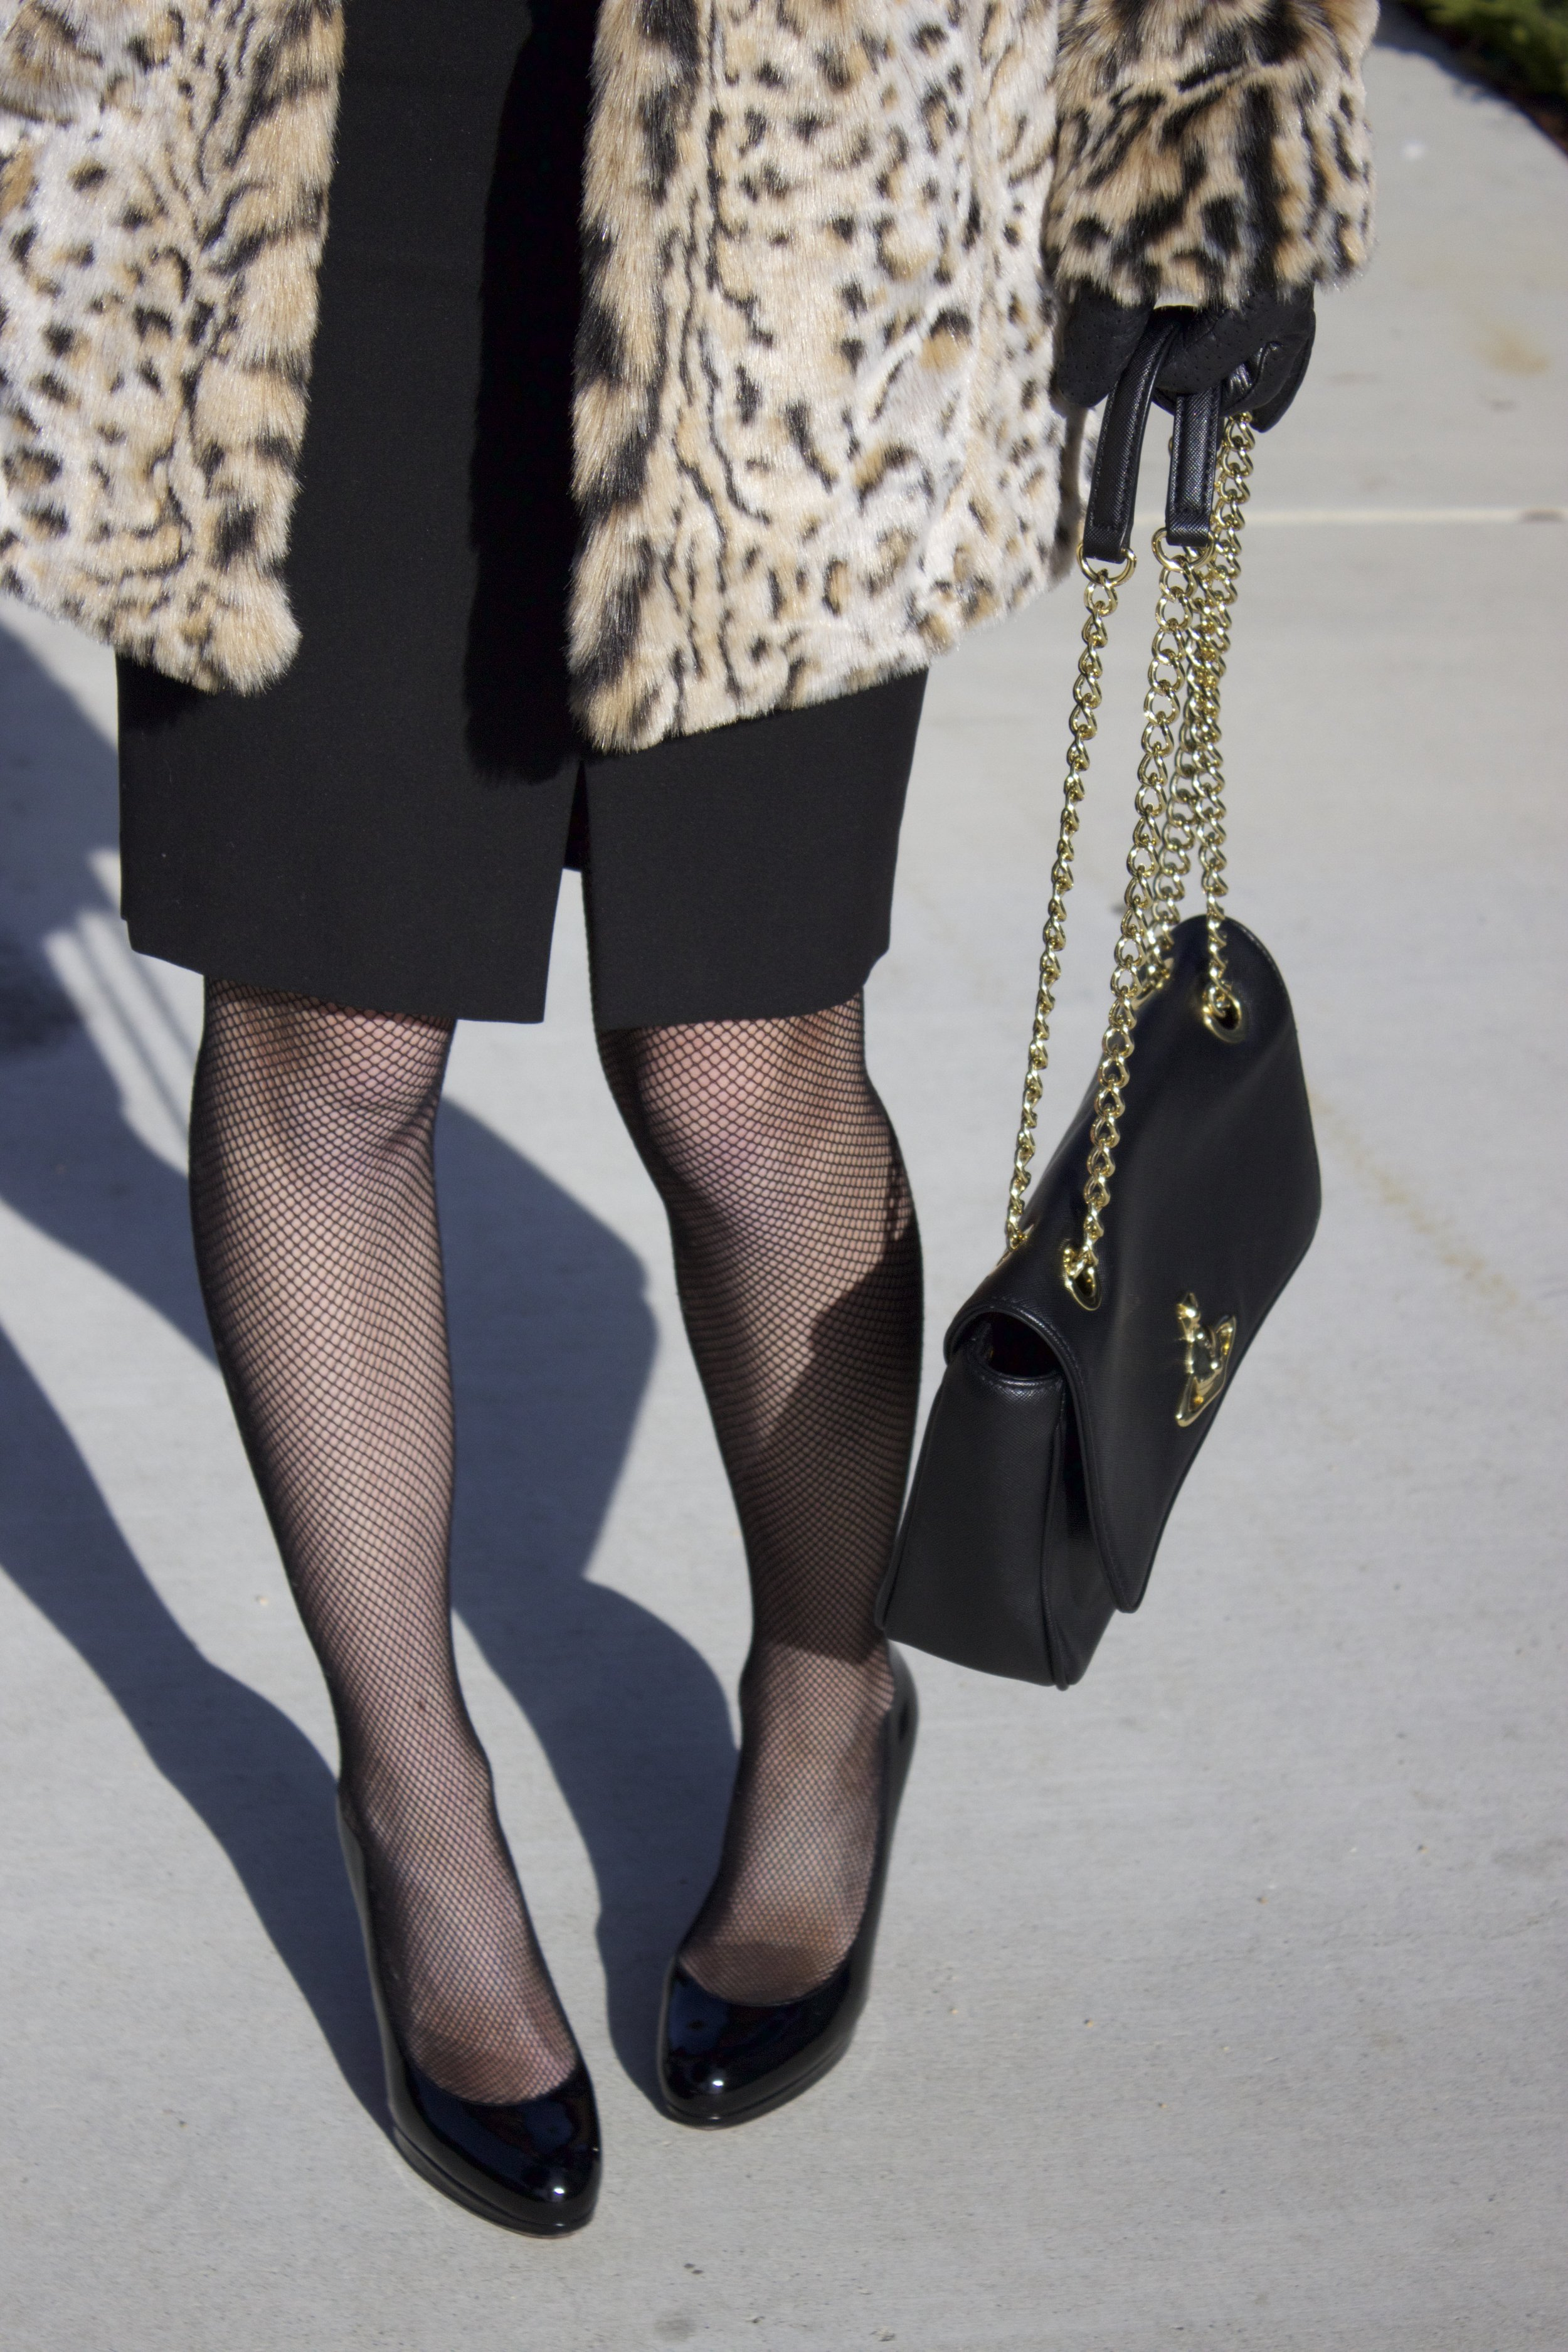 statement-coat-and-fishnets.jpg